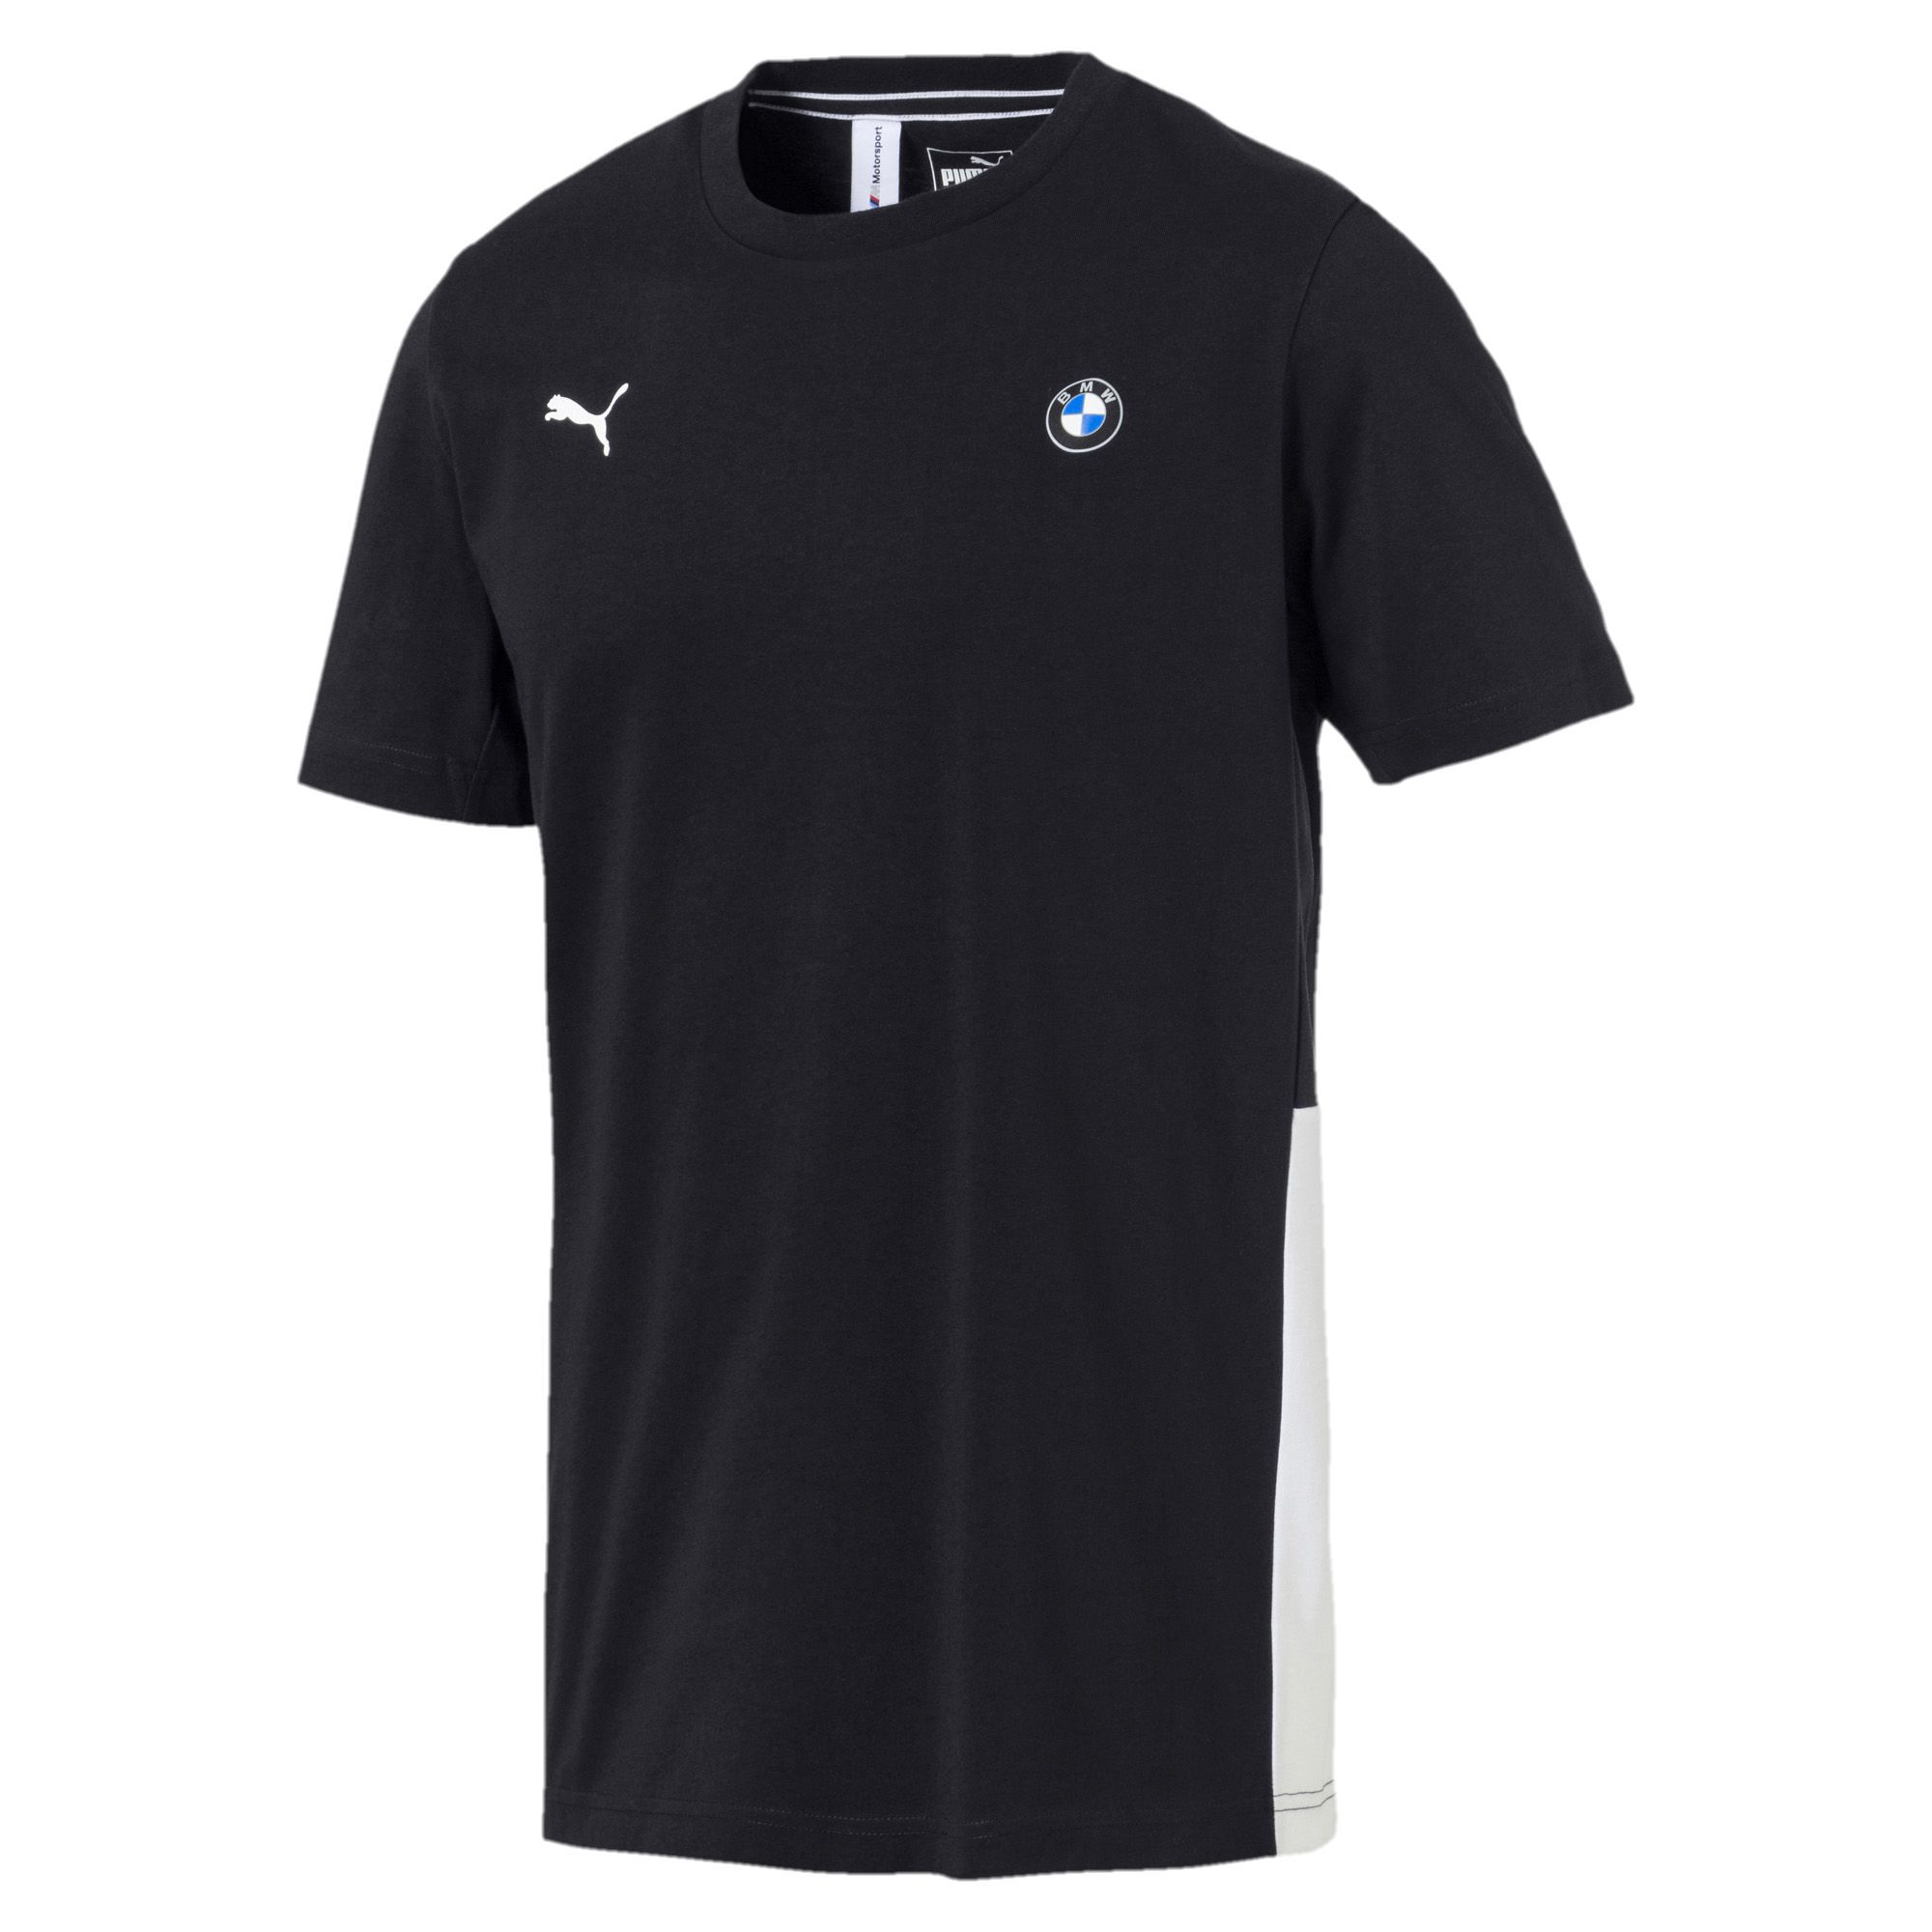 Camiseta Bmw Mms Life Graphic Anthracite 18  - Planet Bike Shop Moto Acessórios